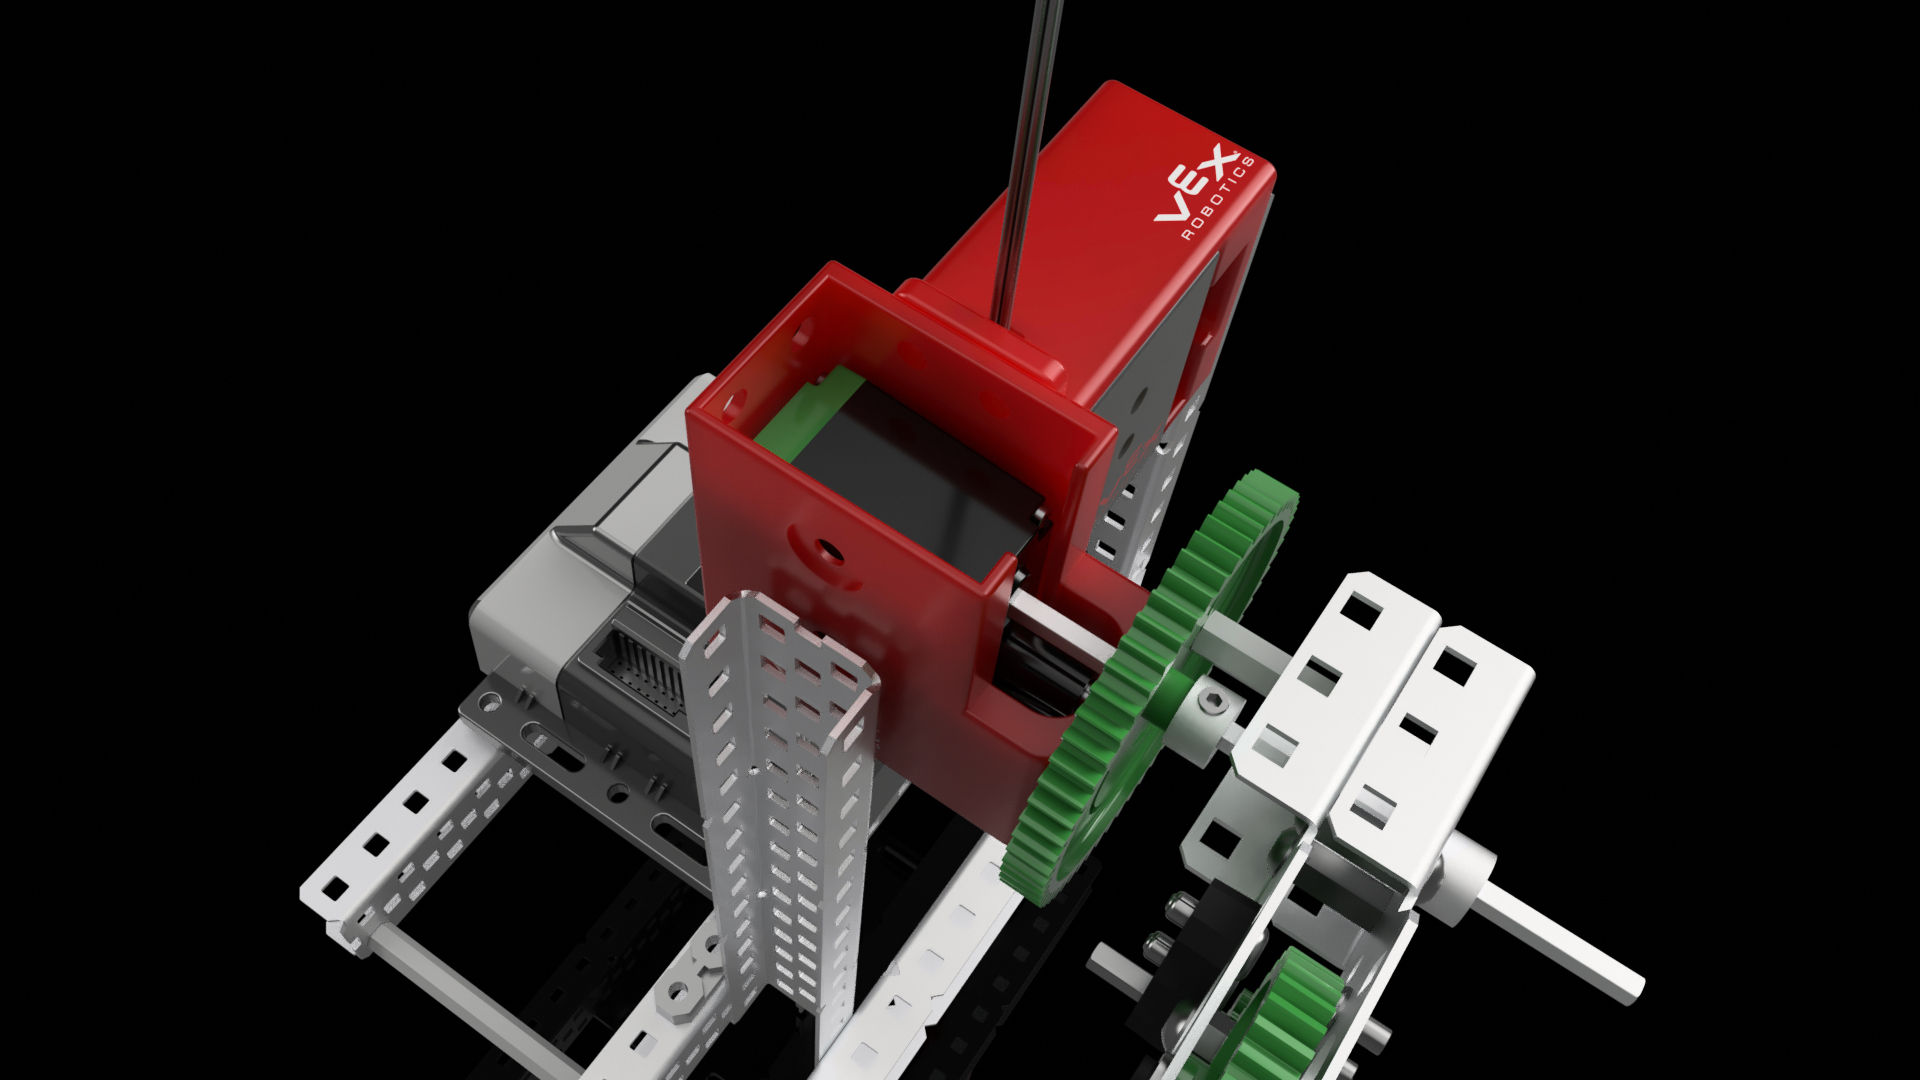 Vex-robotics-motion-2018-jan-10-12-08-37am-000-customizedview12470472432-jpg-3500-3500